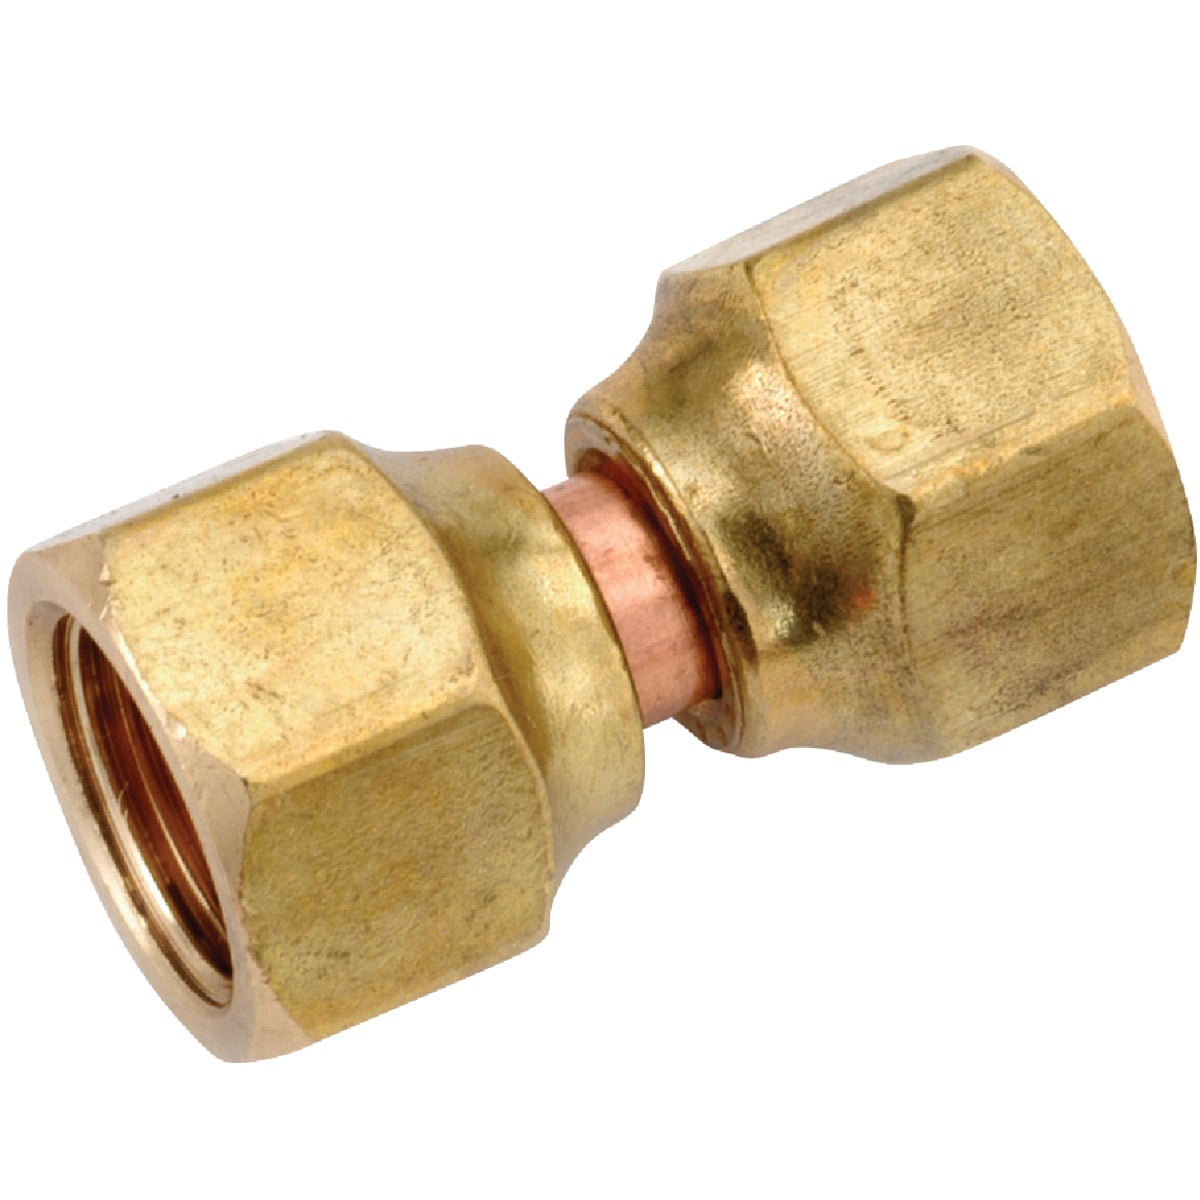 "5/8"" SWIVEL CONNECTOR - 754070-10 by Anderson Metals Corp"